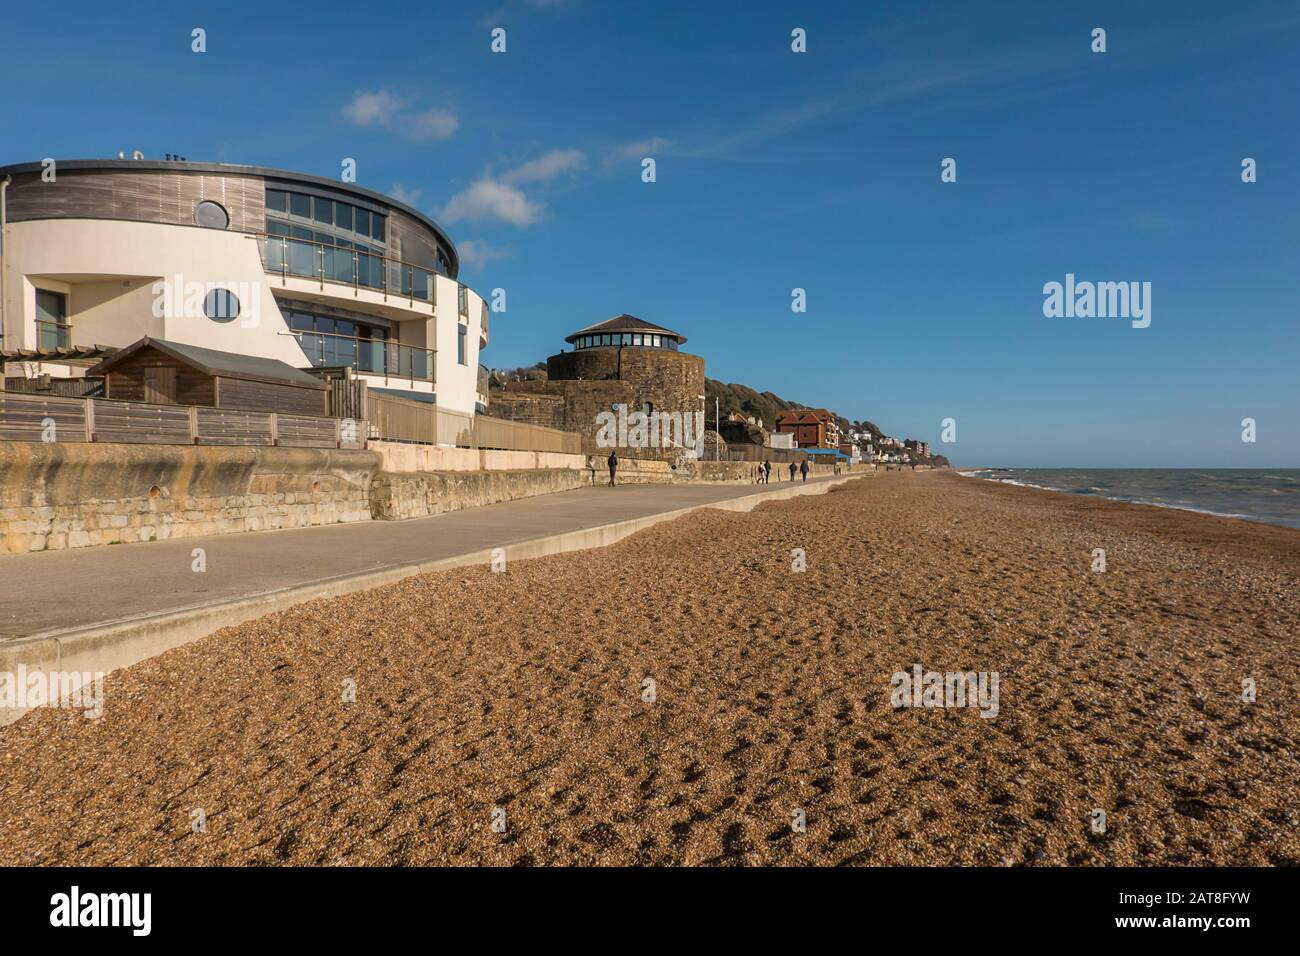 Designer,Home,and,Sandgate Castle,Promanade,Sandgate,Seafront,Sandgate,Folkestone,Kent,England,Cycle and Walking Route,Hythe to Folkestone Section,Sax Stock Photo